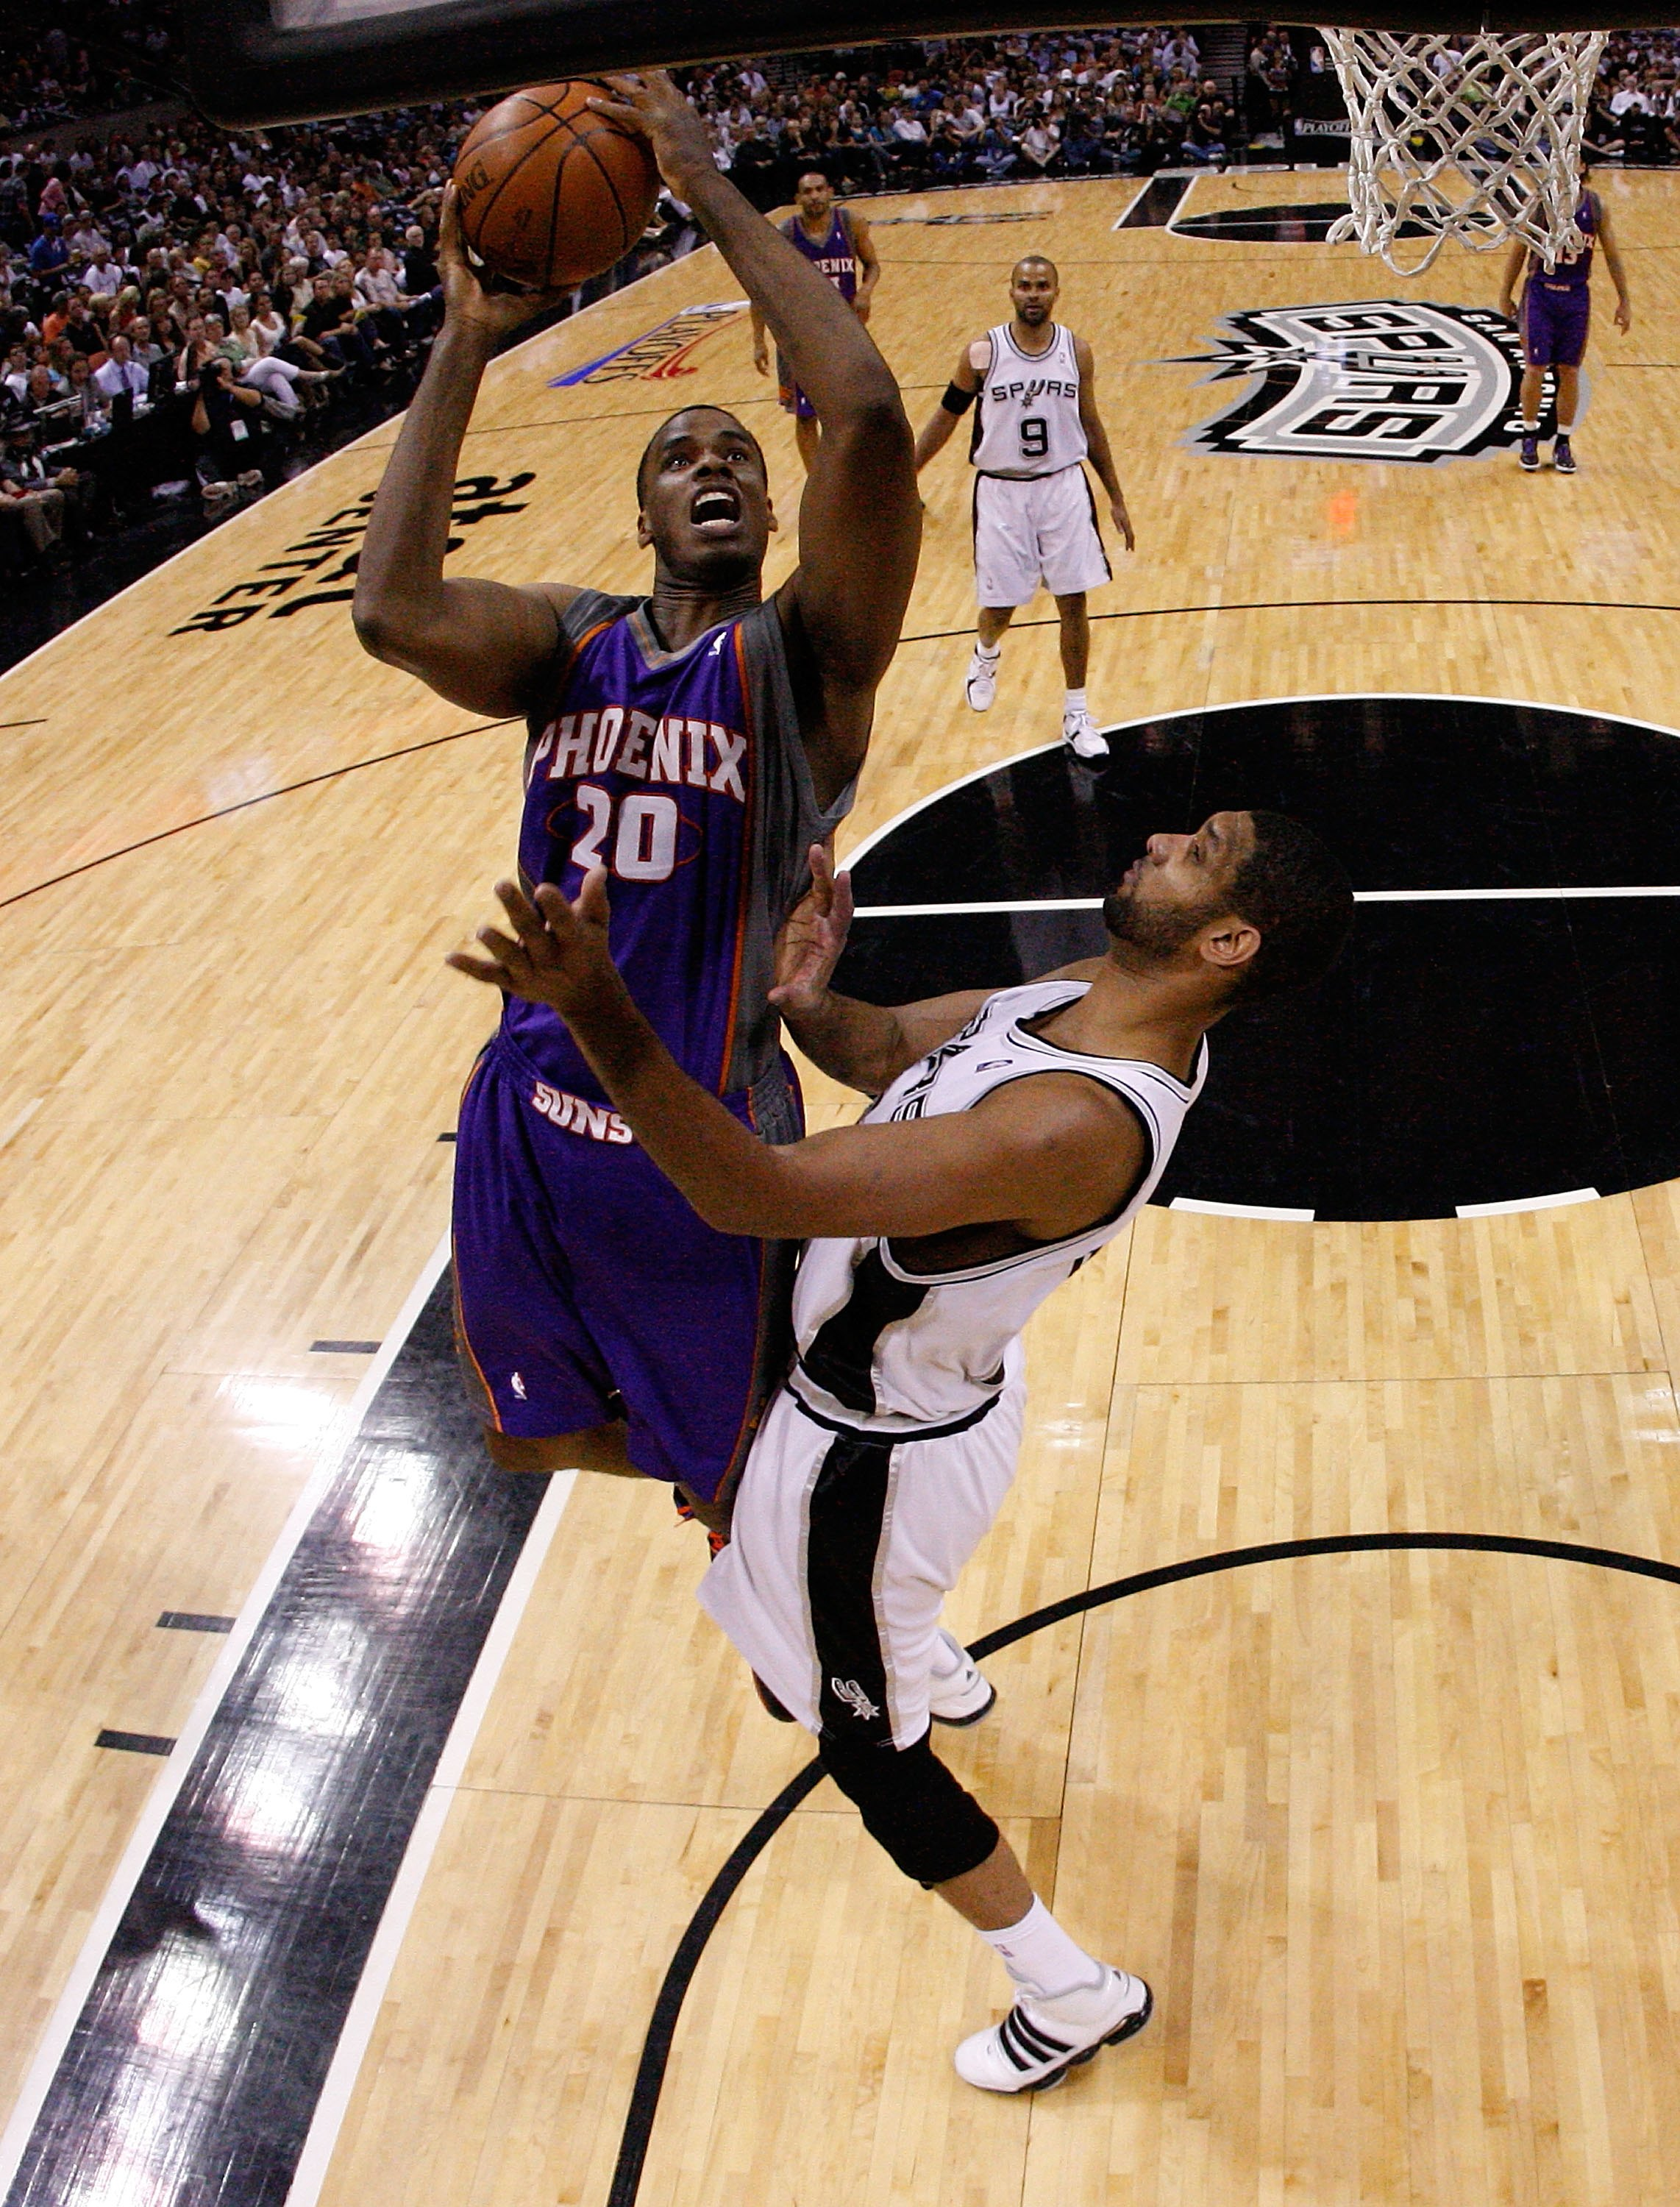 SAN ANTONIO - MAY 09:  Forward Dwayne Jones #20 of the Phoenix Suns takes a shot against Tim Duncan #21 of the San Antonio Spurs in Game Four of the Western Conference Semifinals during the 2010 NBA Playoffs at AT&T Center on May 9, 2010 in San Antonio, T